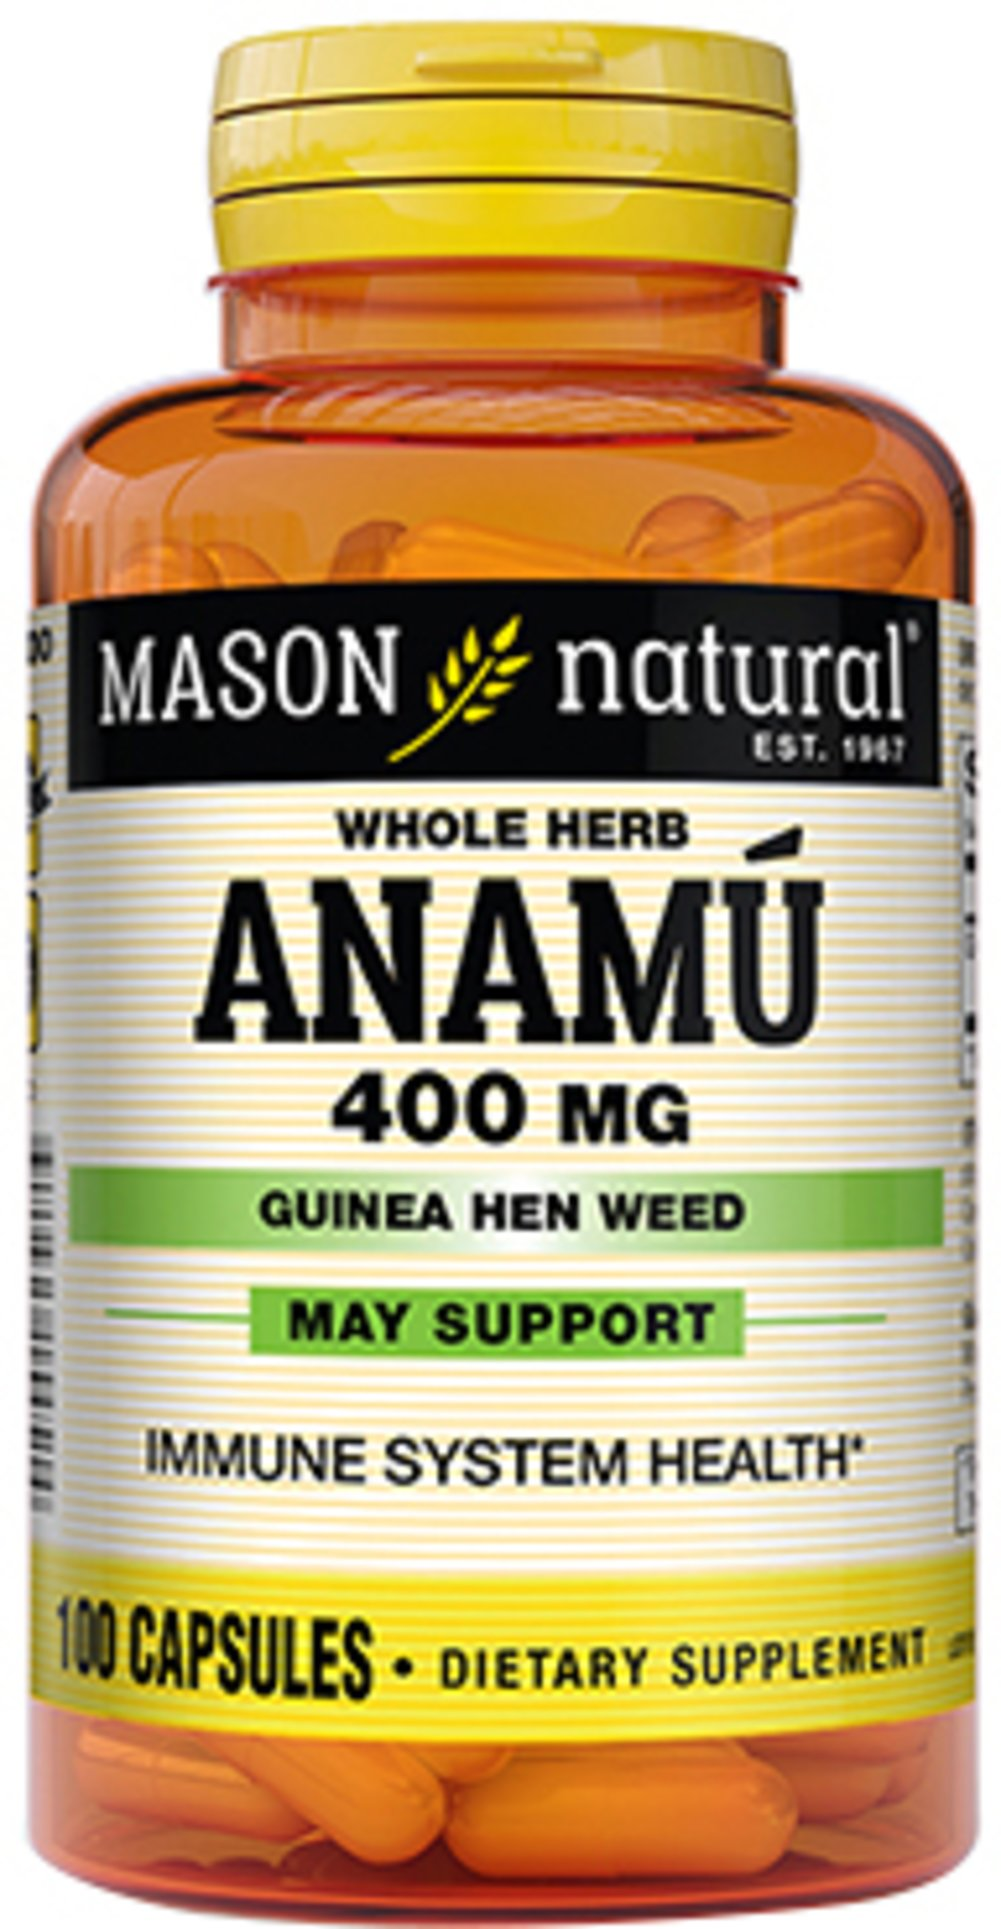 Anamu 400 mg <p><strong>From the Manufacturer's Label:</strong></p><p>Anamu 400 mg is manufactured by Mason Naturals.</p> 100 Capsules 400 mg $5.99